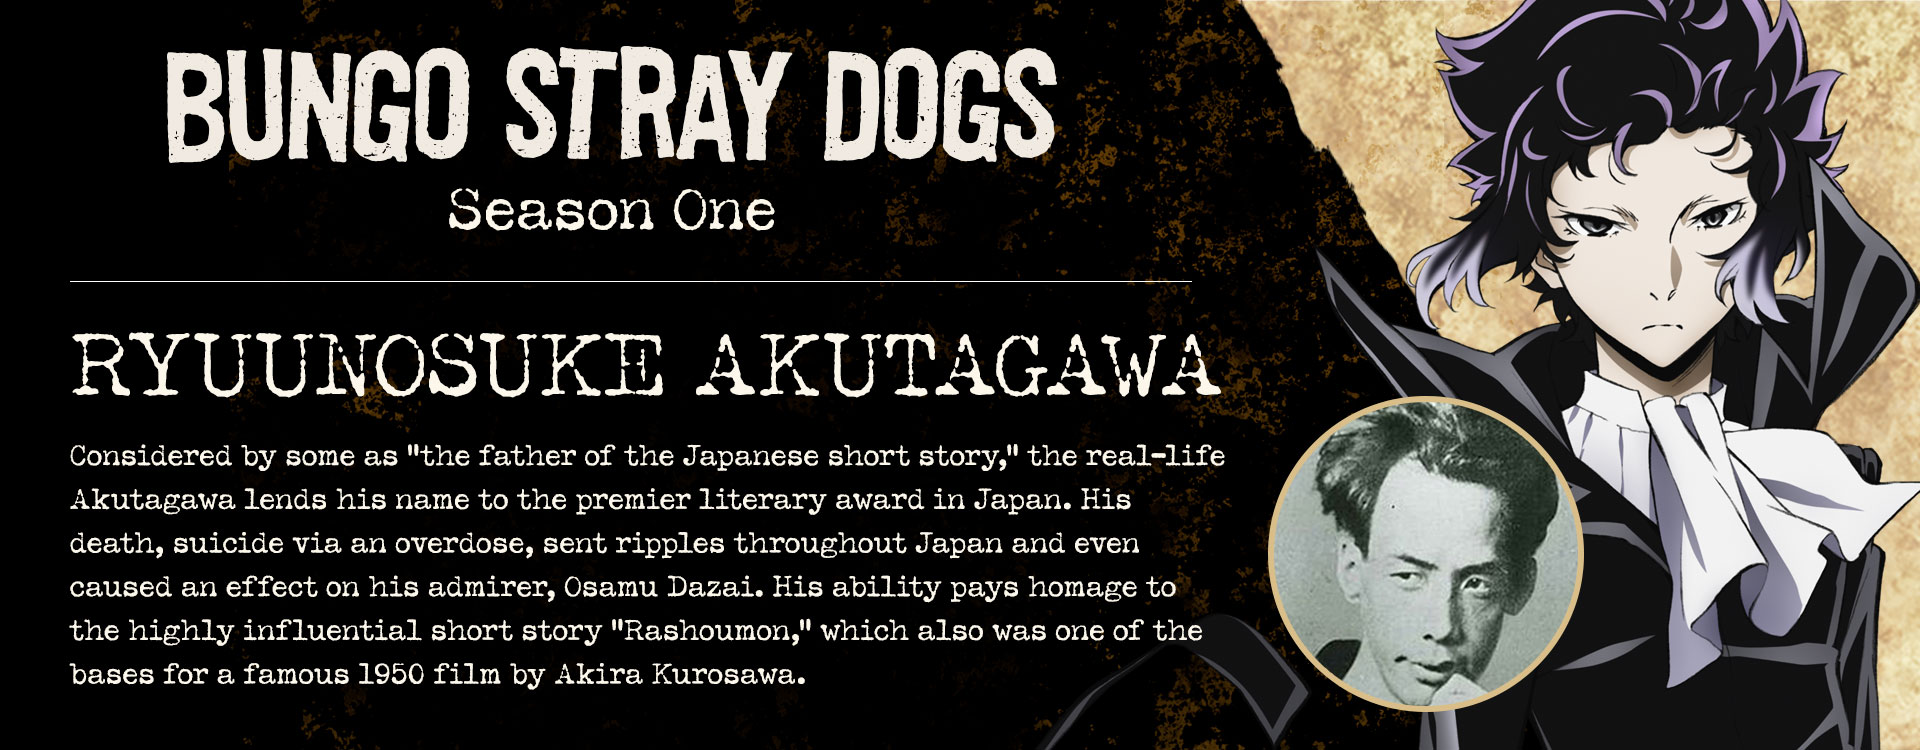 The Real Stories Behind the Bungo Stray Dogs - Funimation